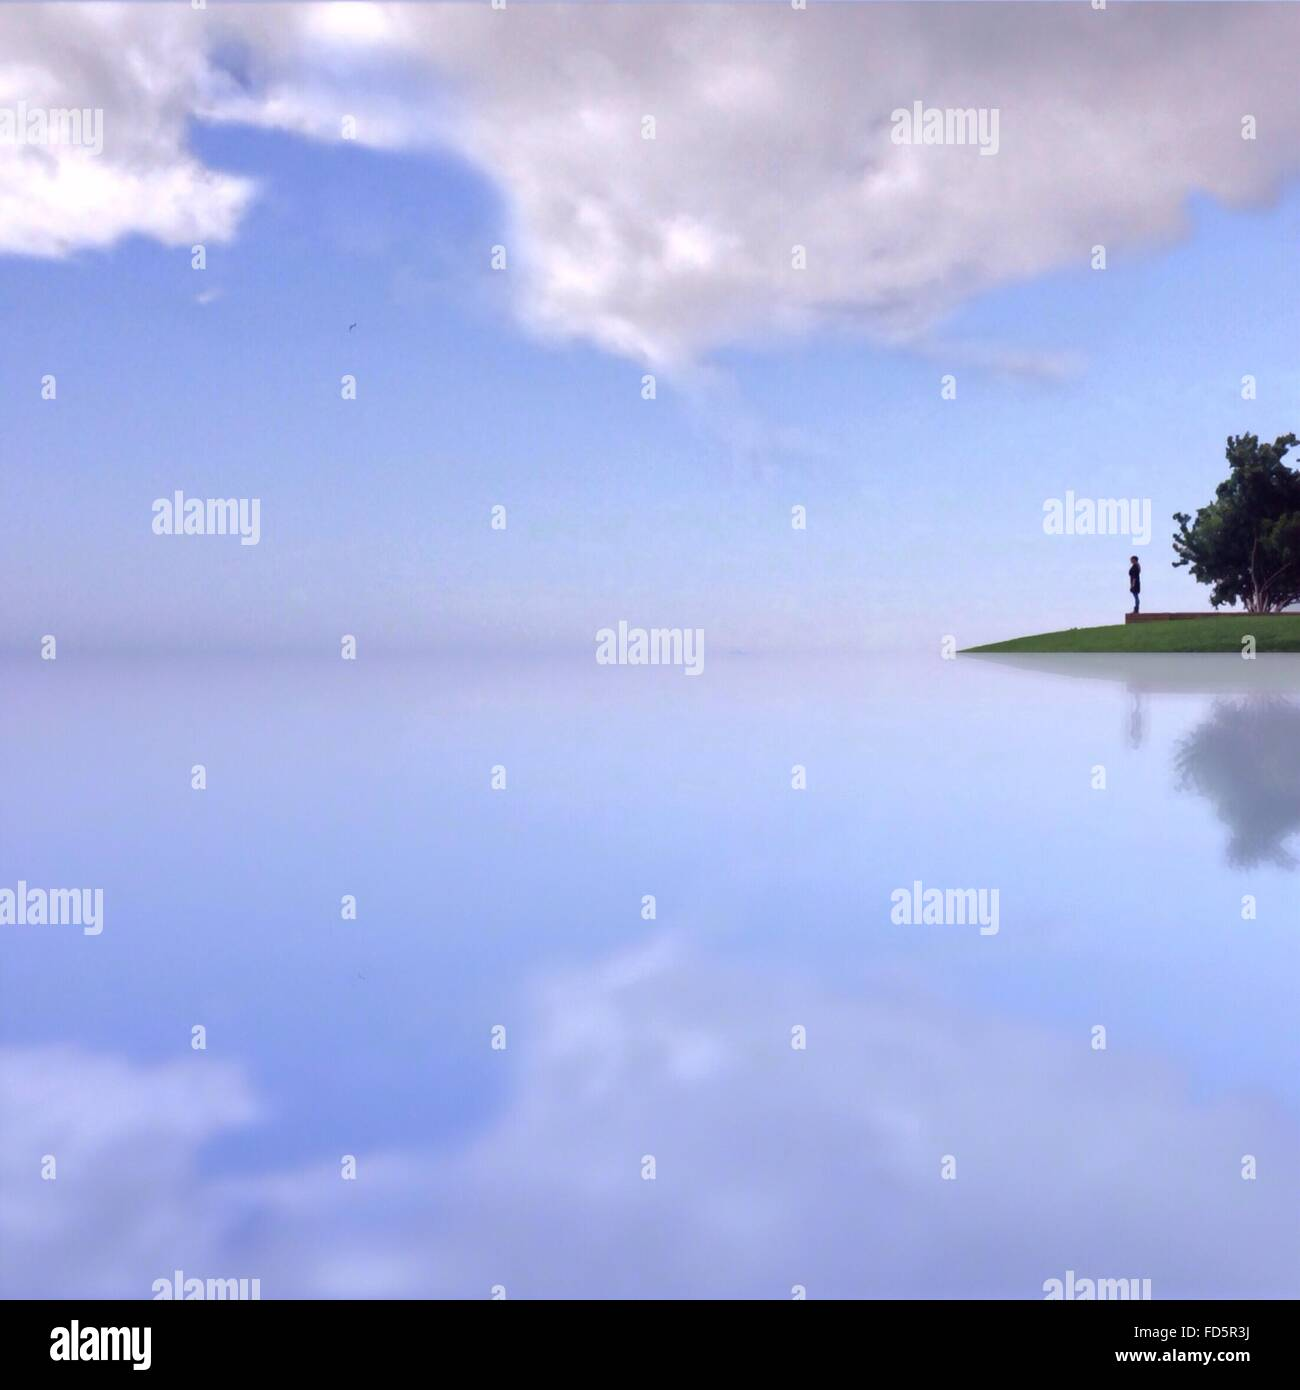 Scenic View Of Calm Lake Against Sky - Stock Image